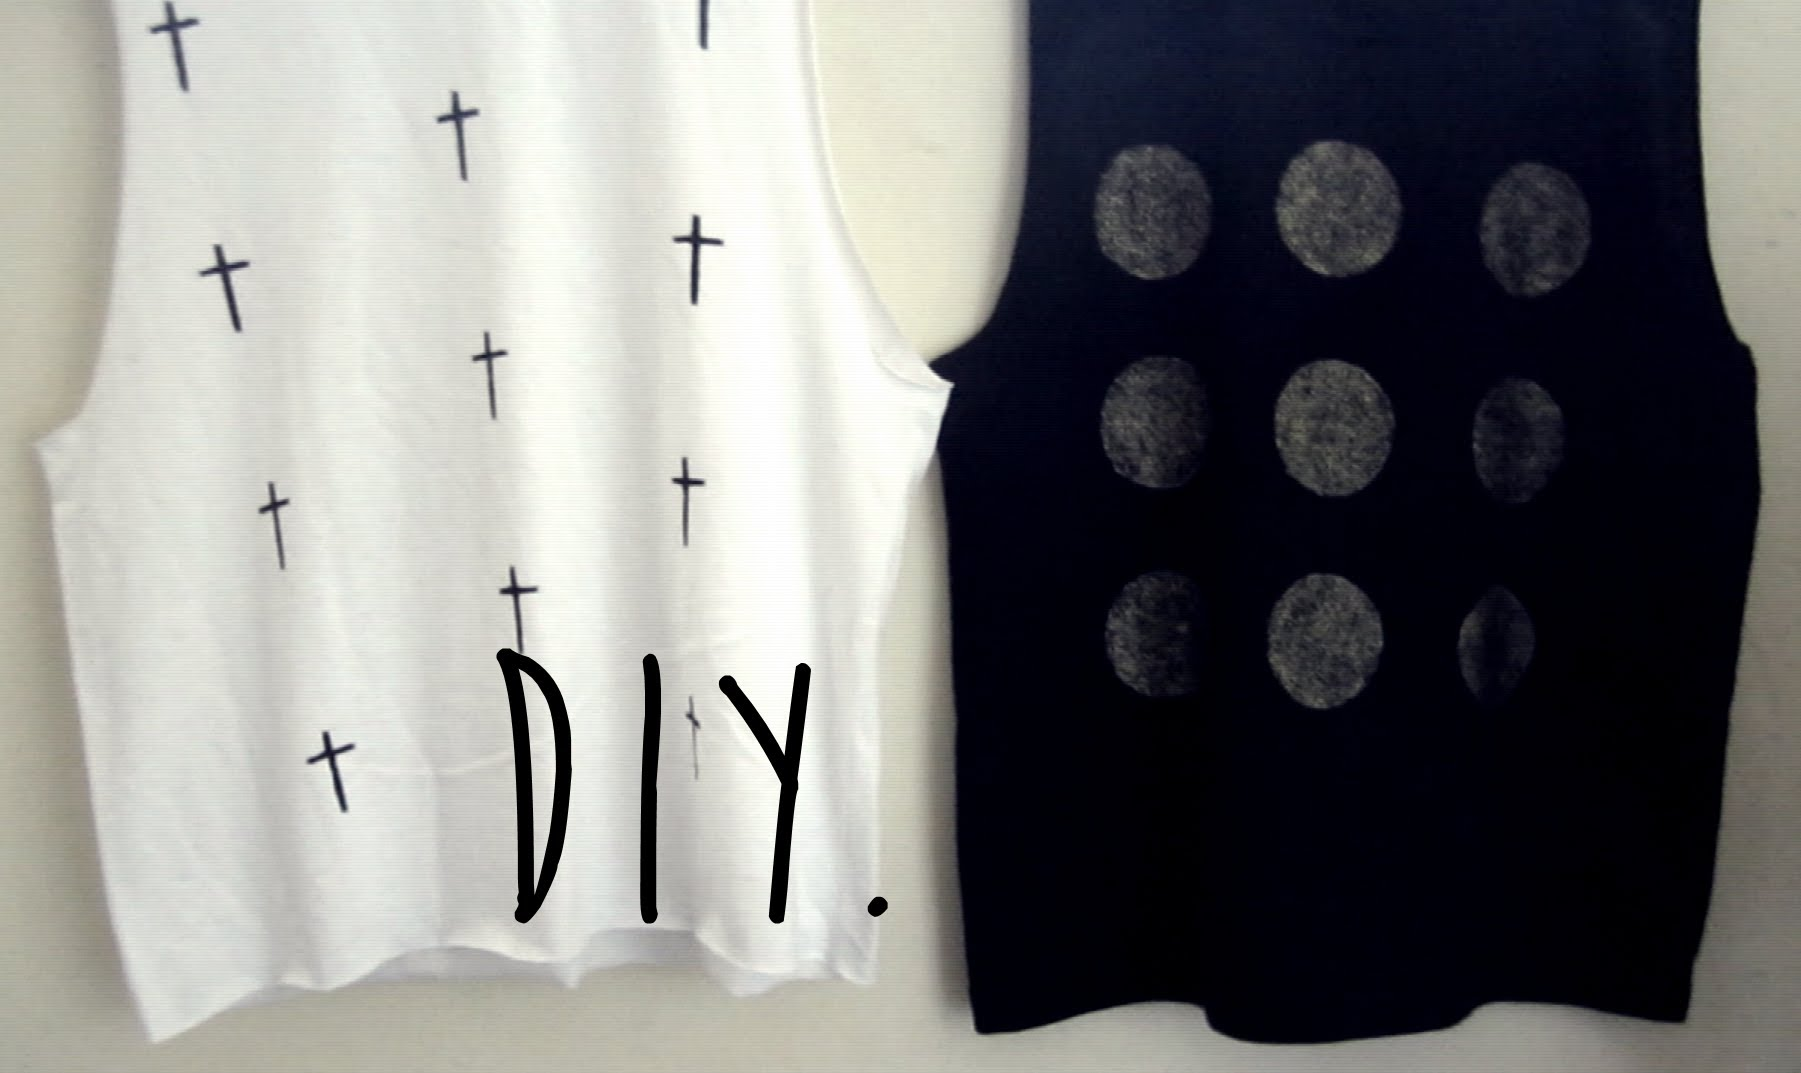 Bekend DIY ♥ Pimp Your Old T-Shirts #diy #hack | diy.fyi &GJ56